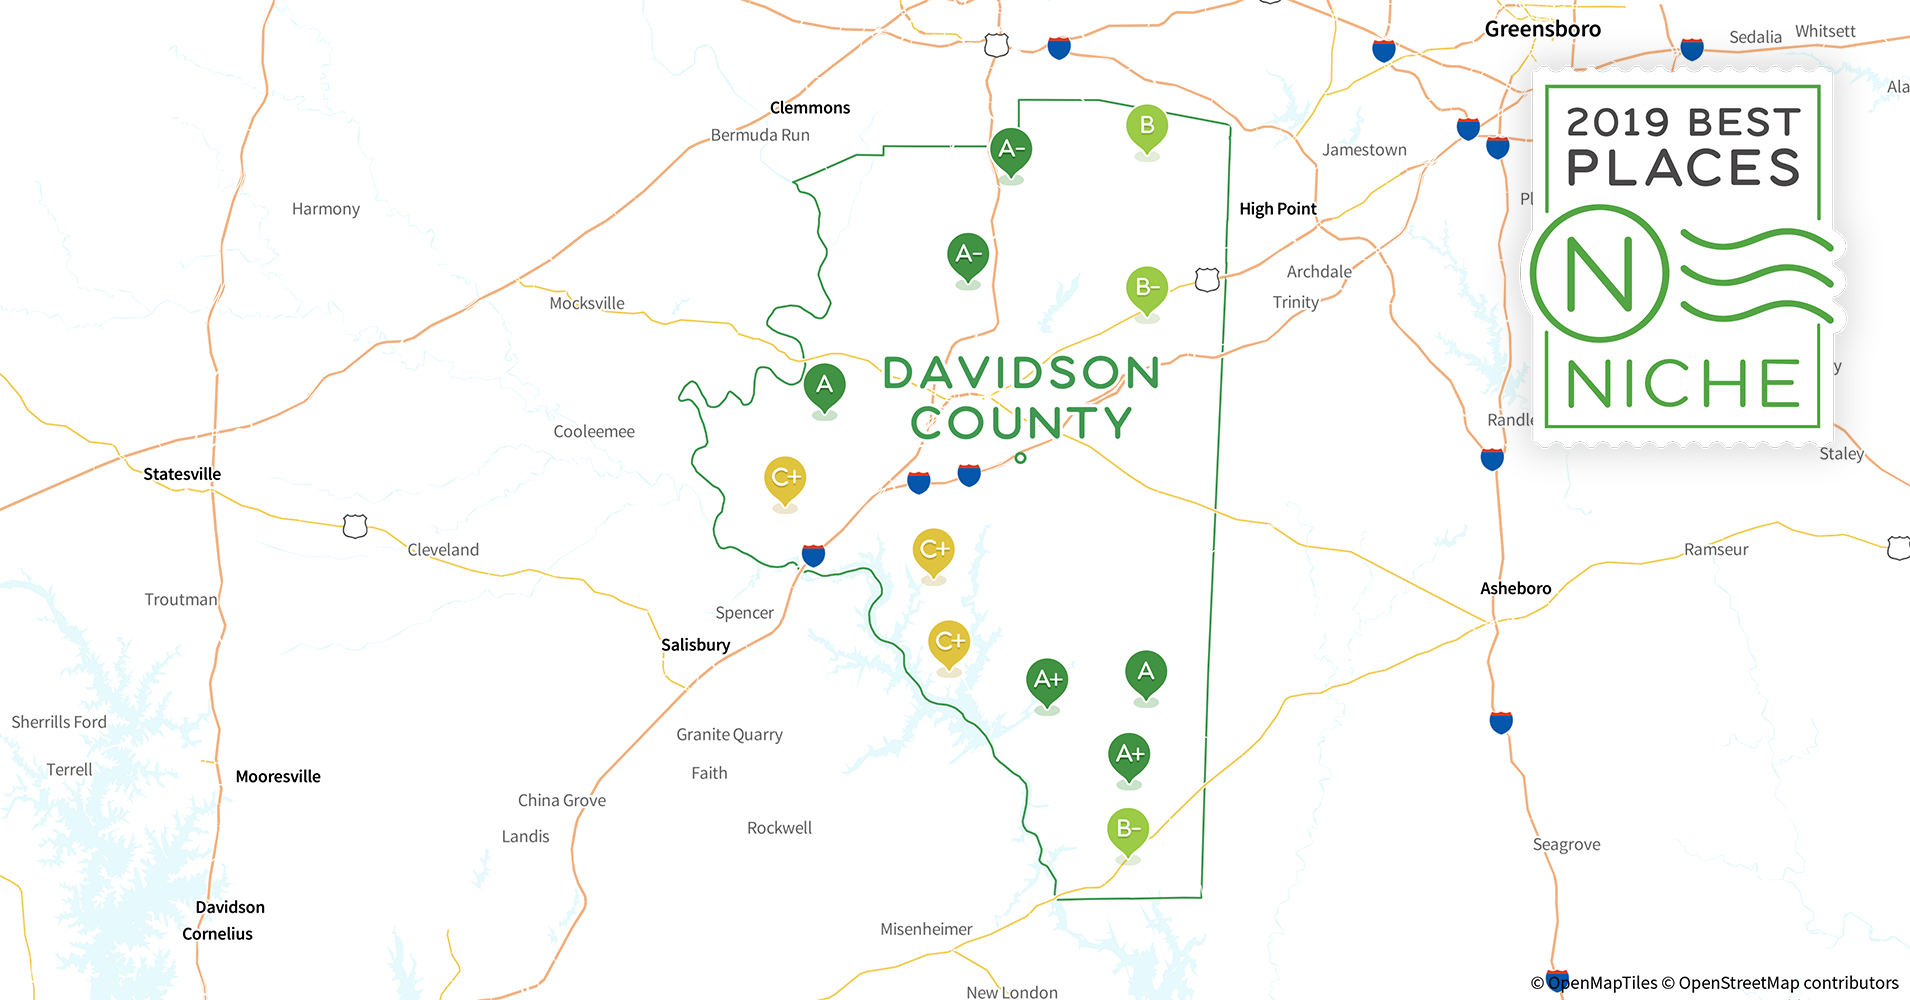 2019 Best Places To Live In Davidson County Nc Niche